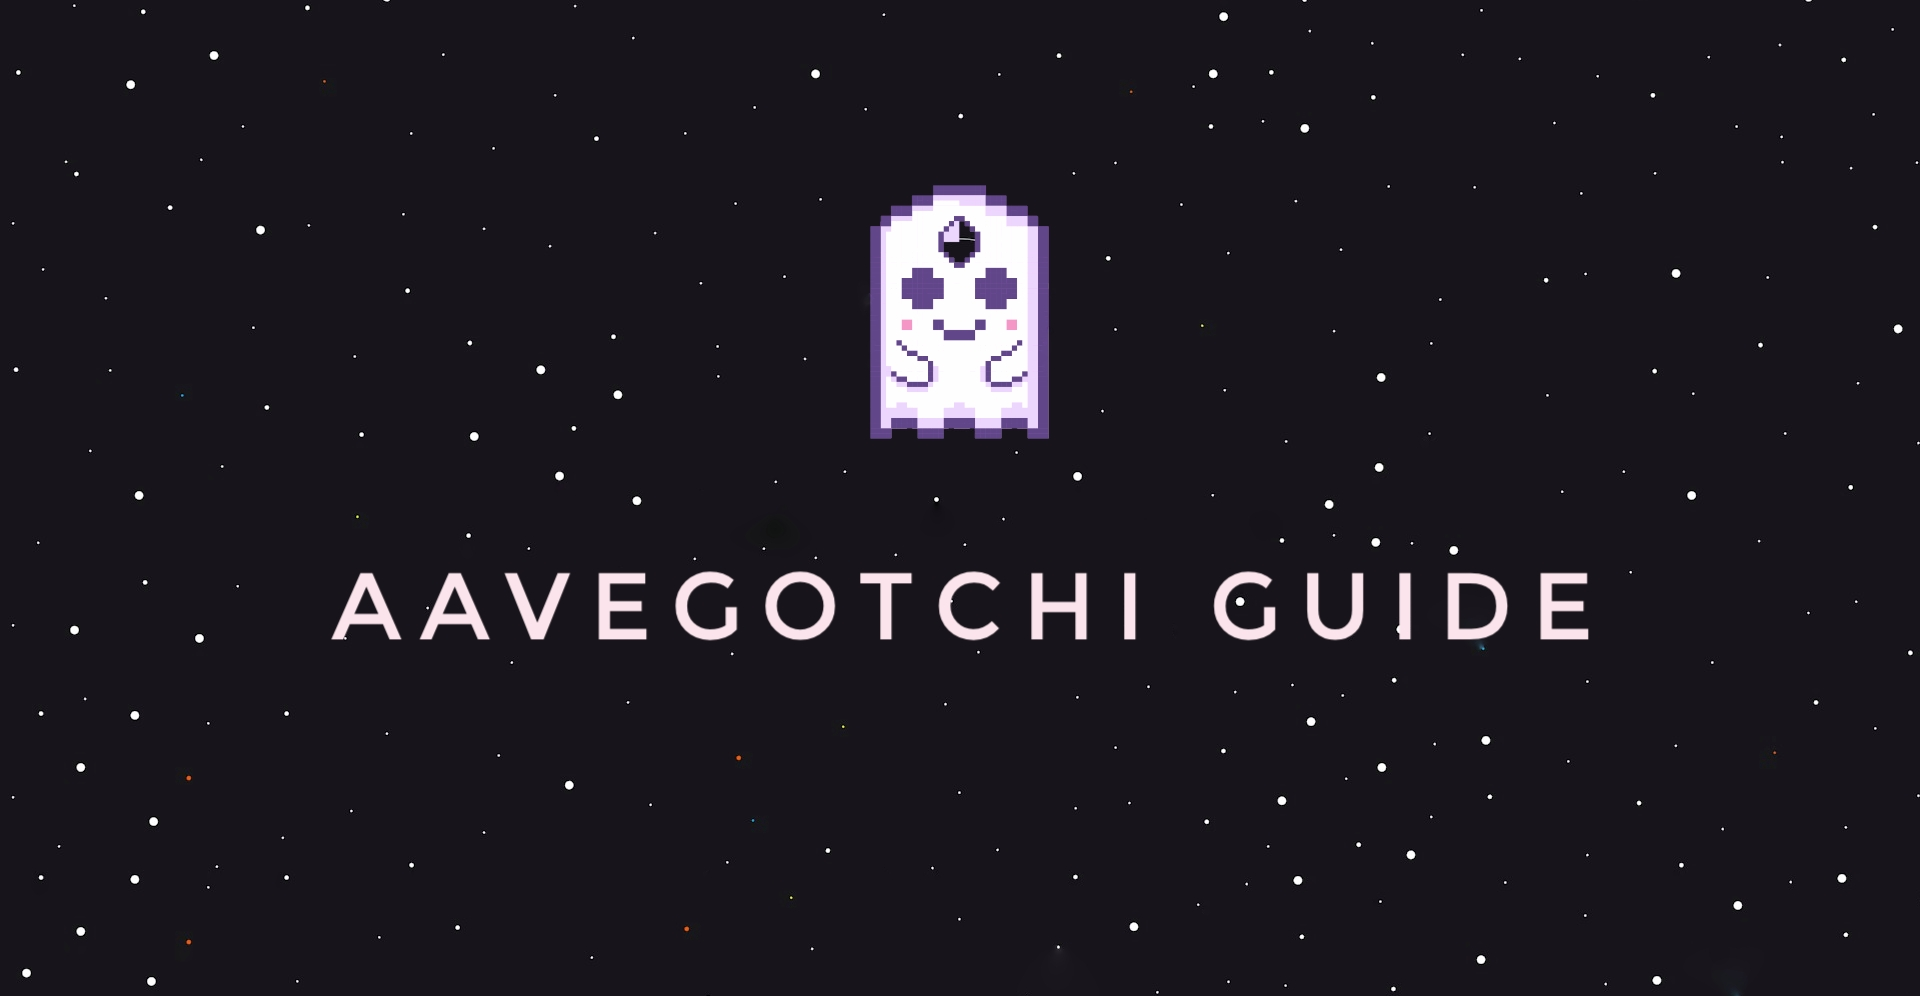 Aavegotchi guide